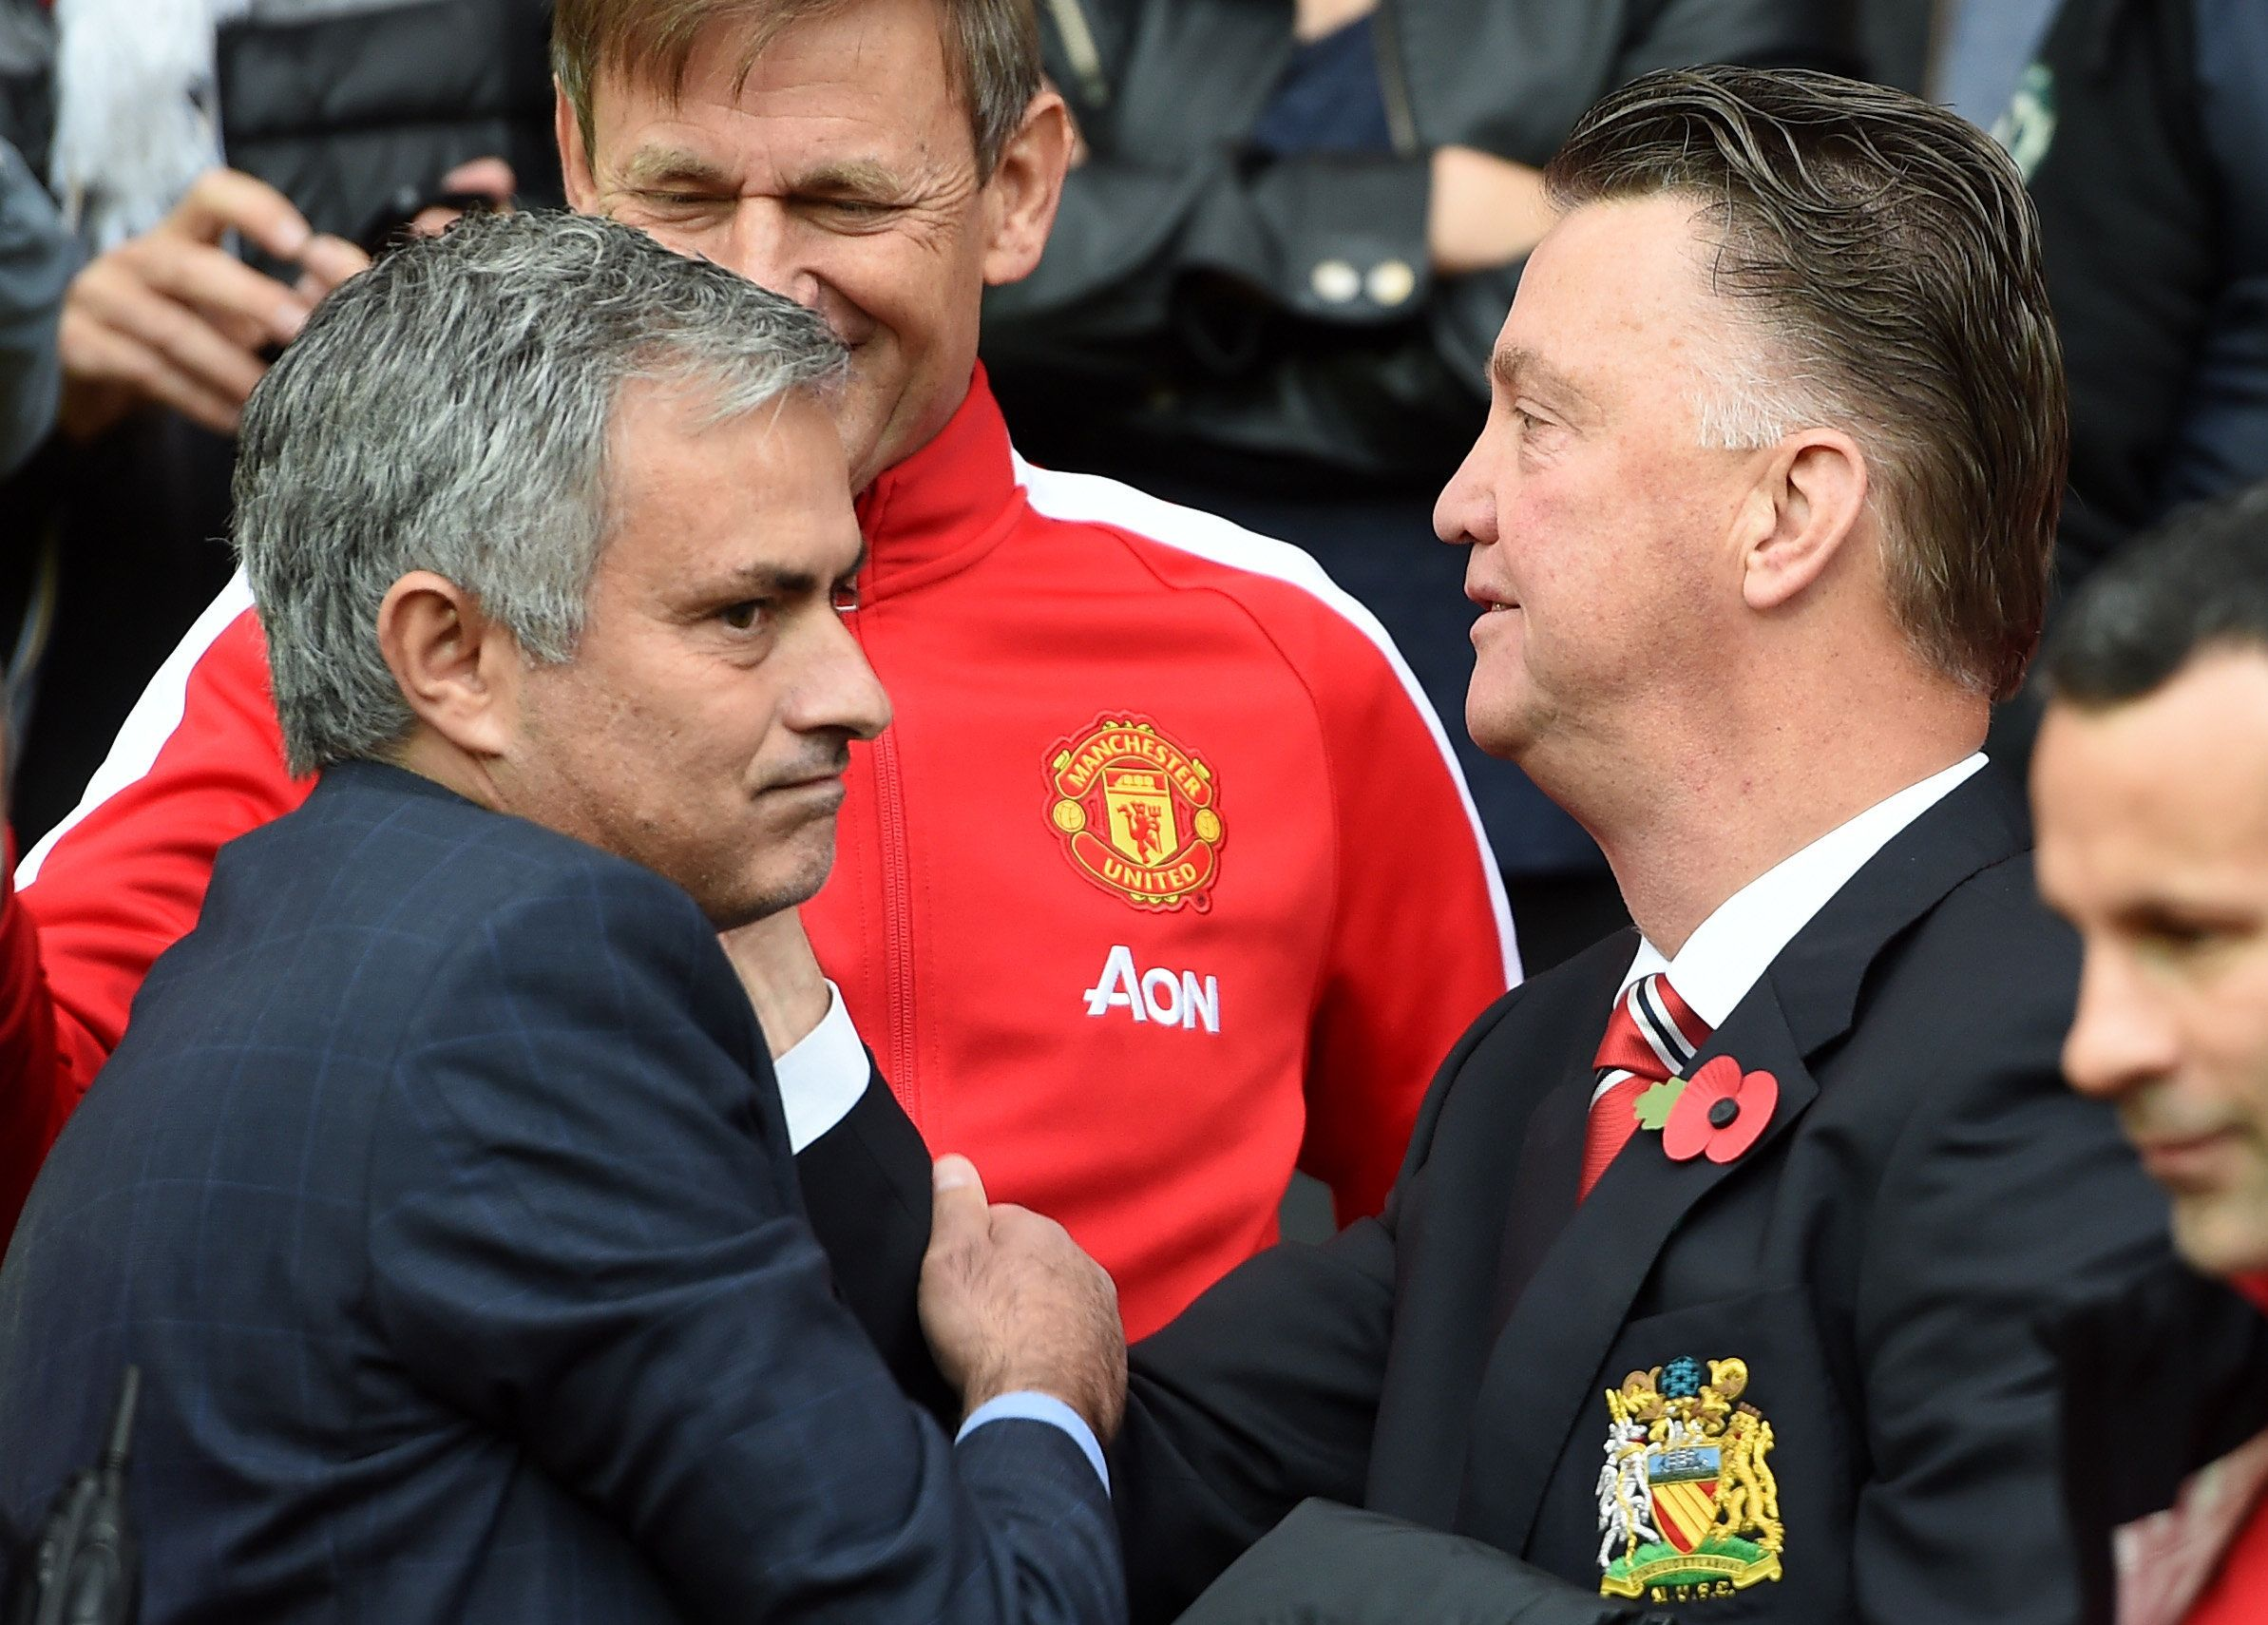 After Winning The FA Cup, Van Gaal Could Be About To Receive Very Bad